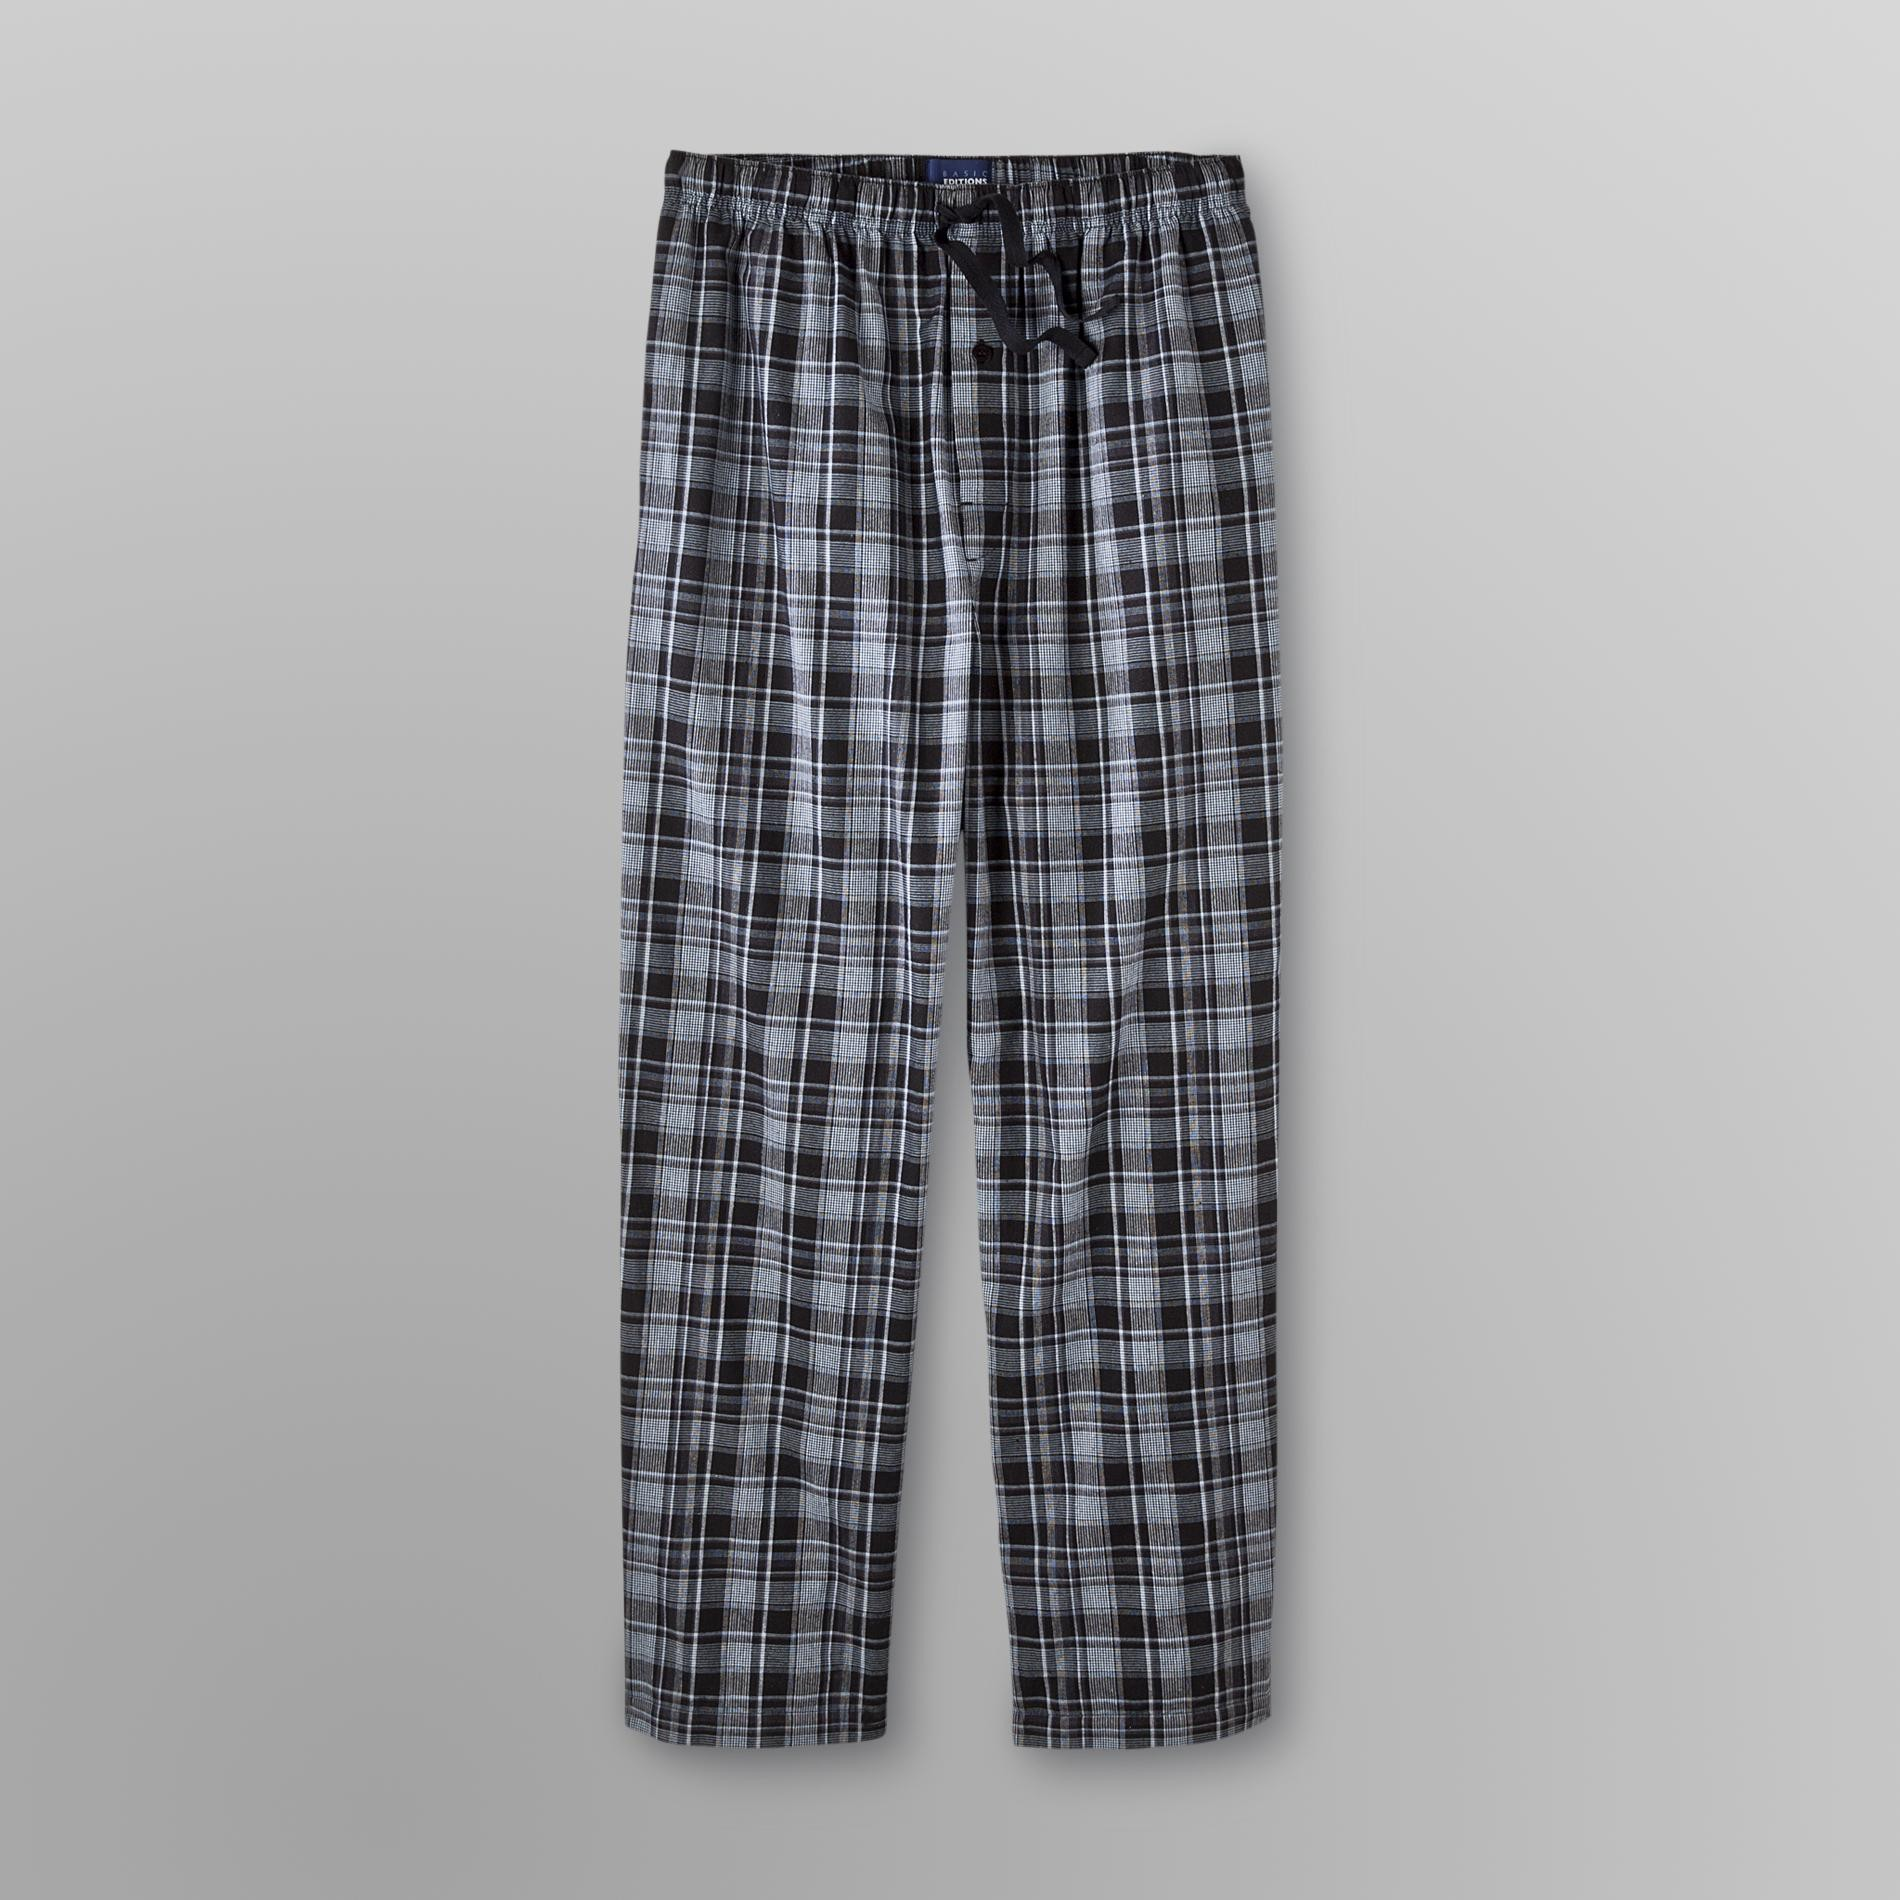 Men's Big & Tall Poplin Pajama Pants - Plaid